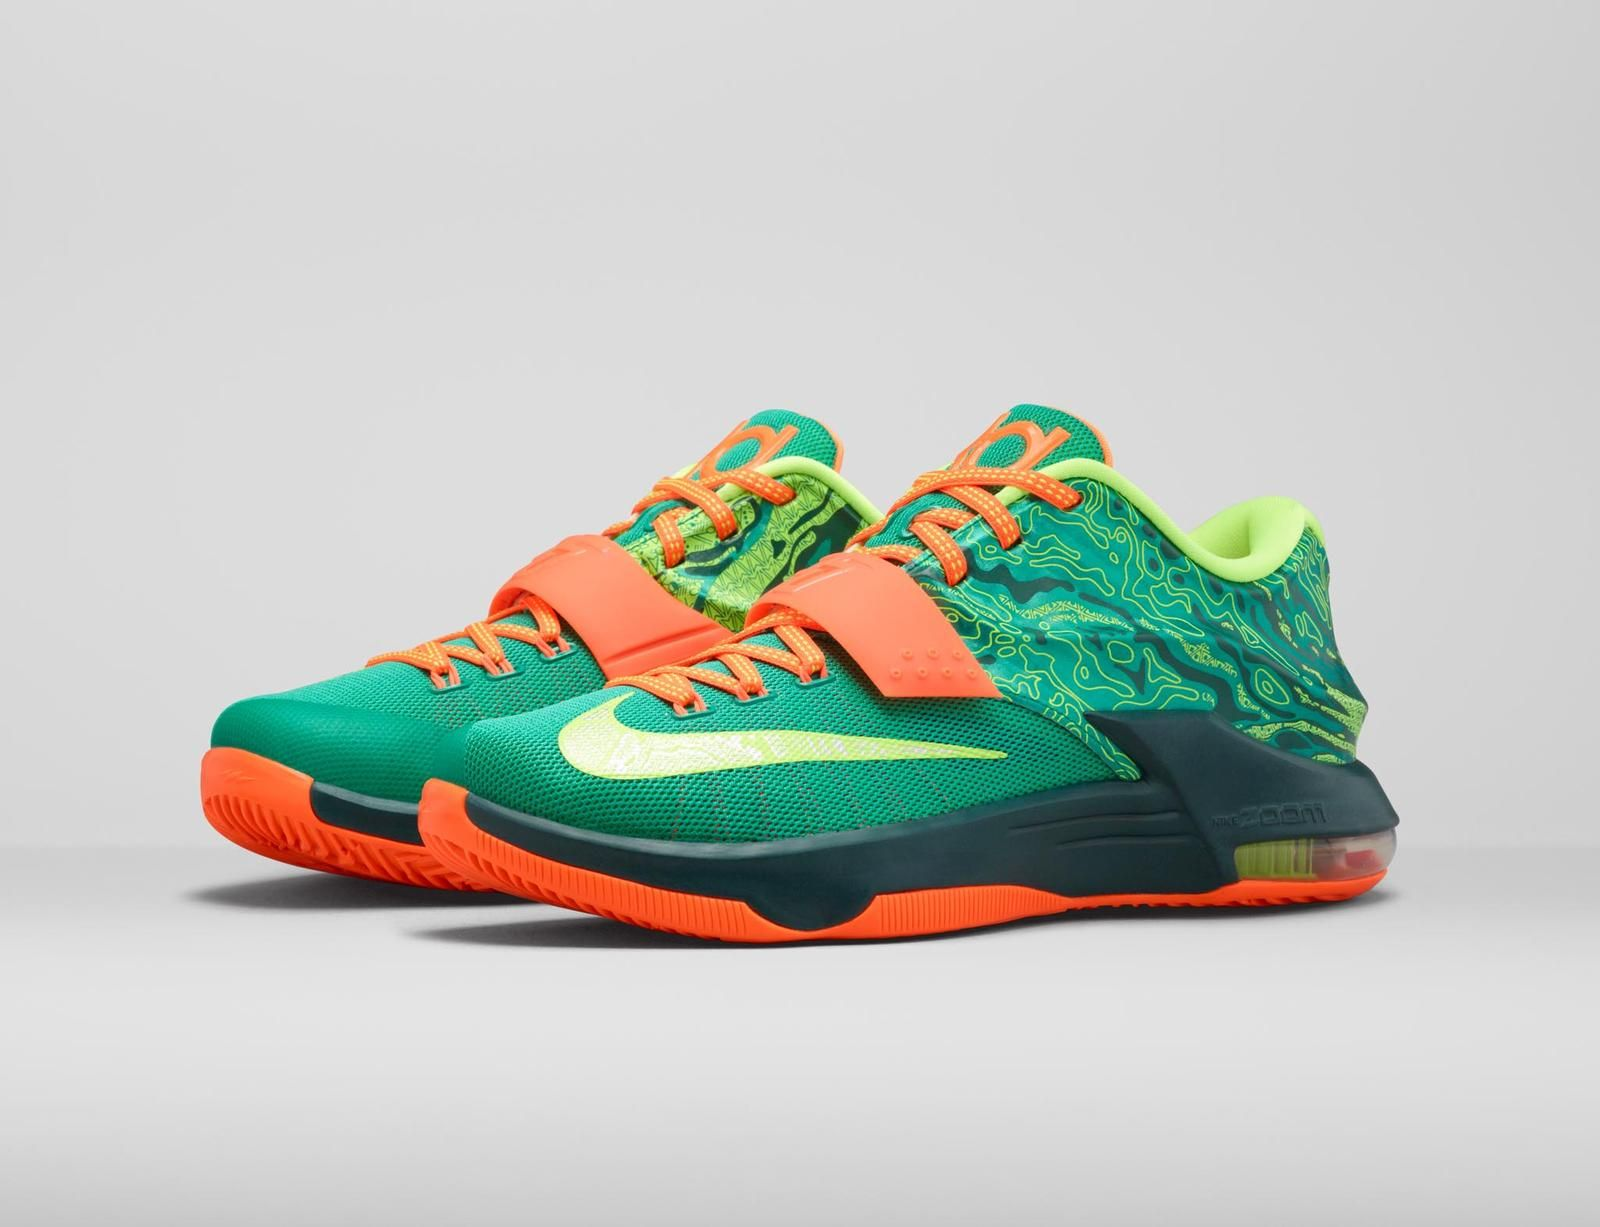 9438fea38df2 The KD 7 Weatherman colorway takes inspiration from tools used by ...